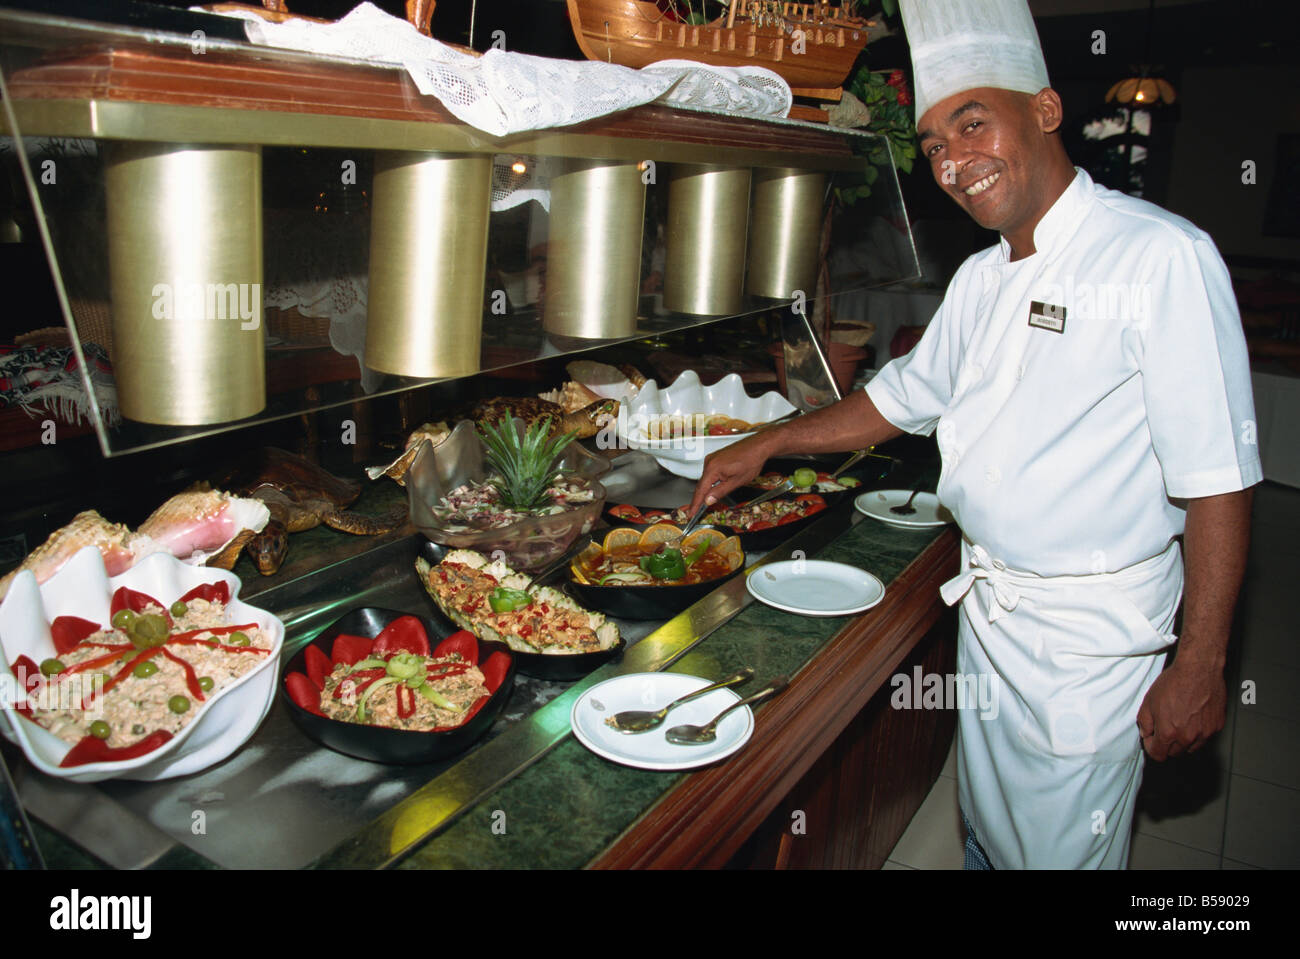 Final touches from chef to seafood buffet, Havana, Cuba, West Indies, Central America - Stock Image